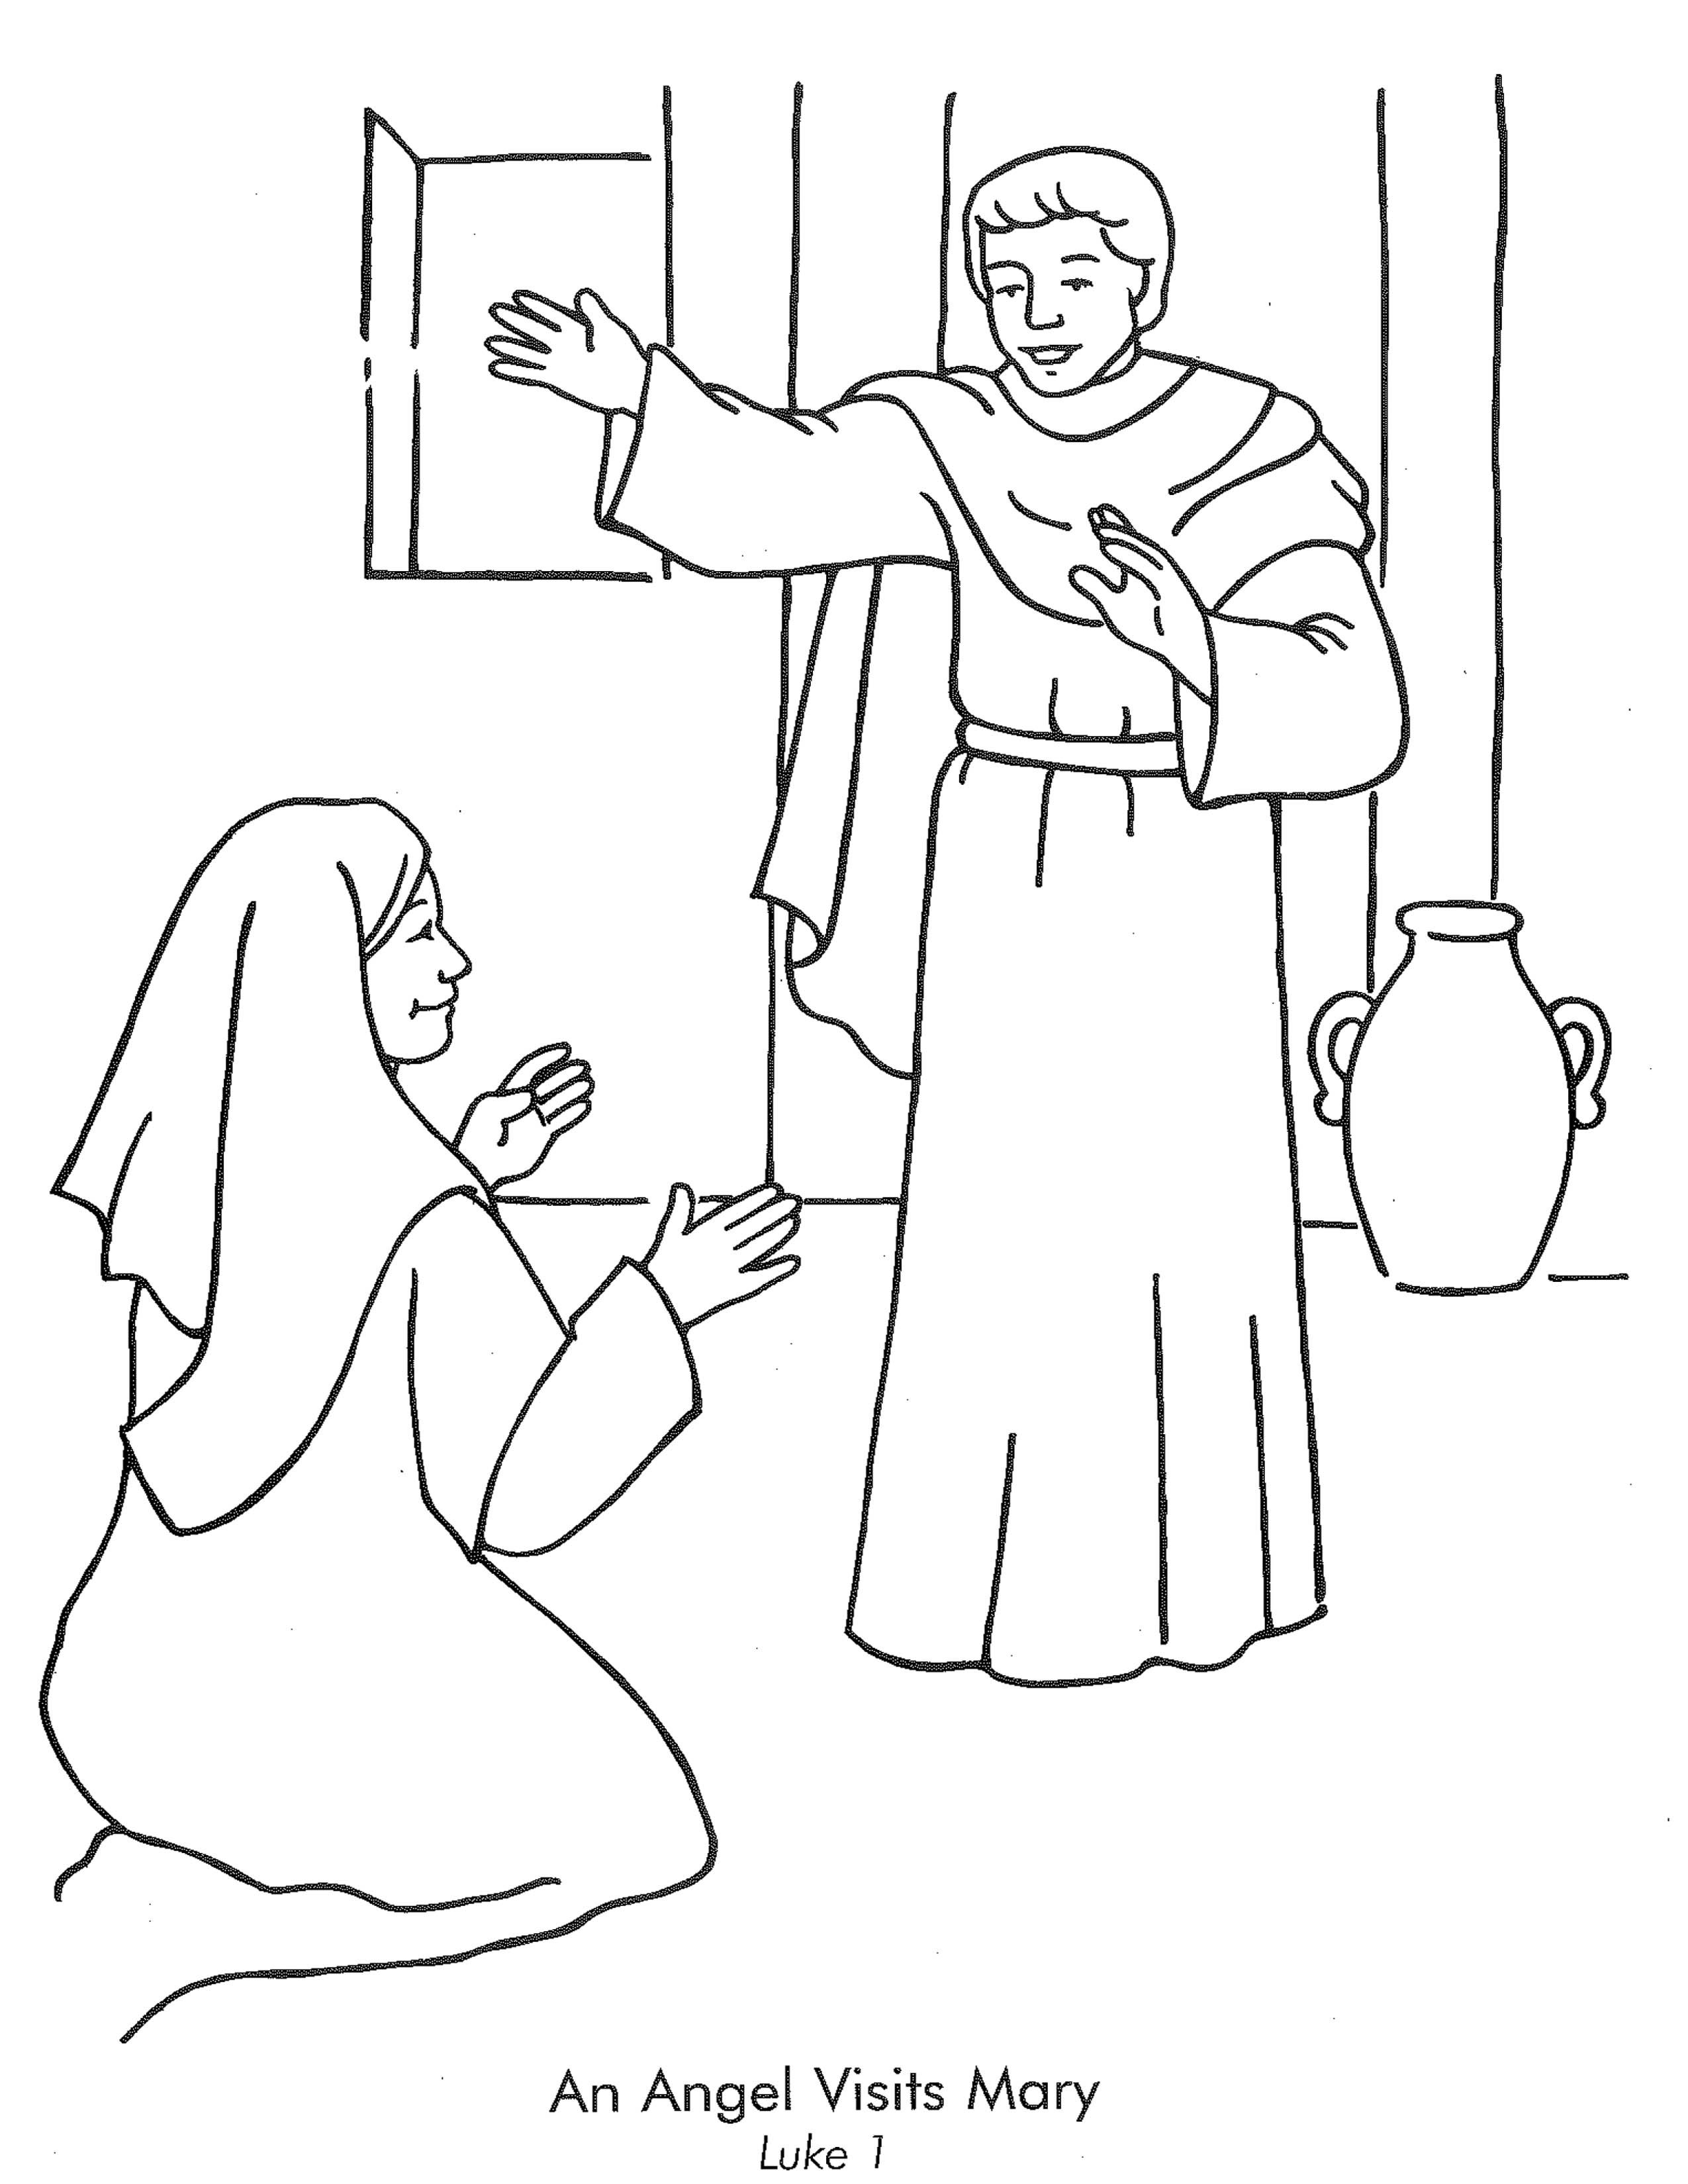 Biblical Images Of Angel Announcement To Mary Google Search Sunday School Coloring Sheets Angel Coloring Pages Bible Coloring Pages